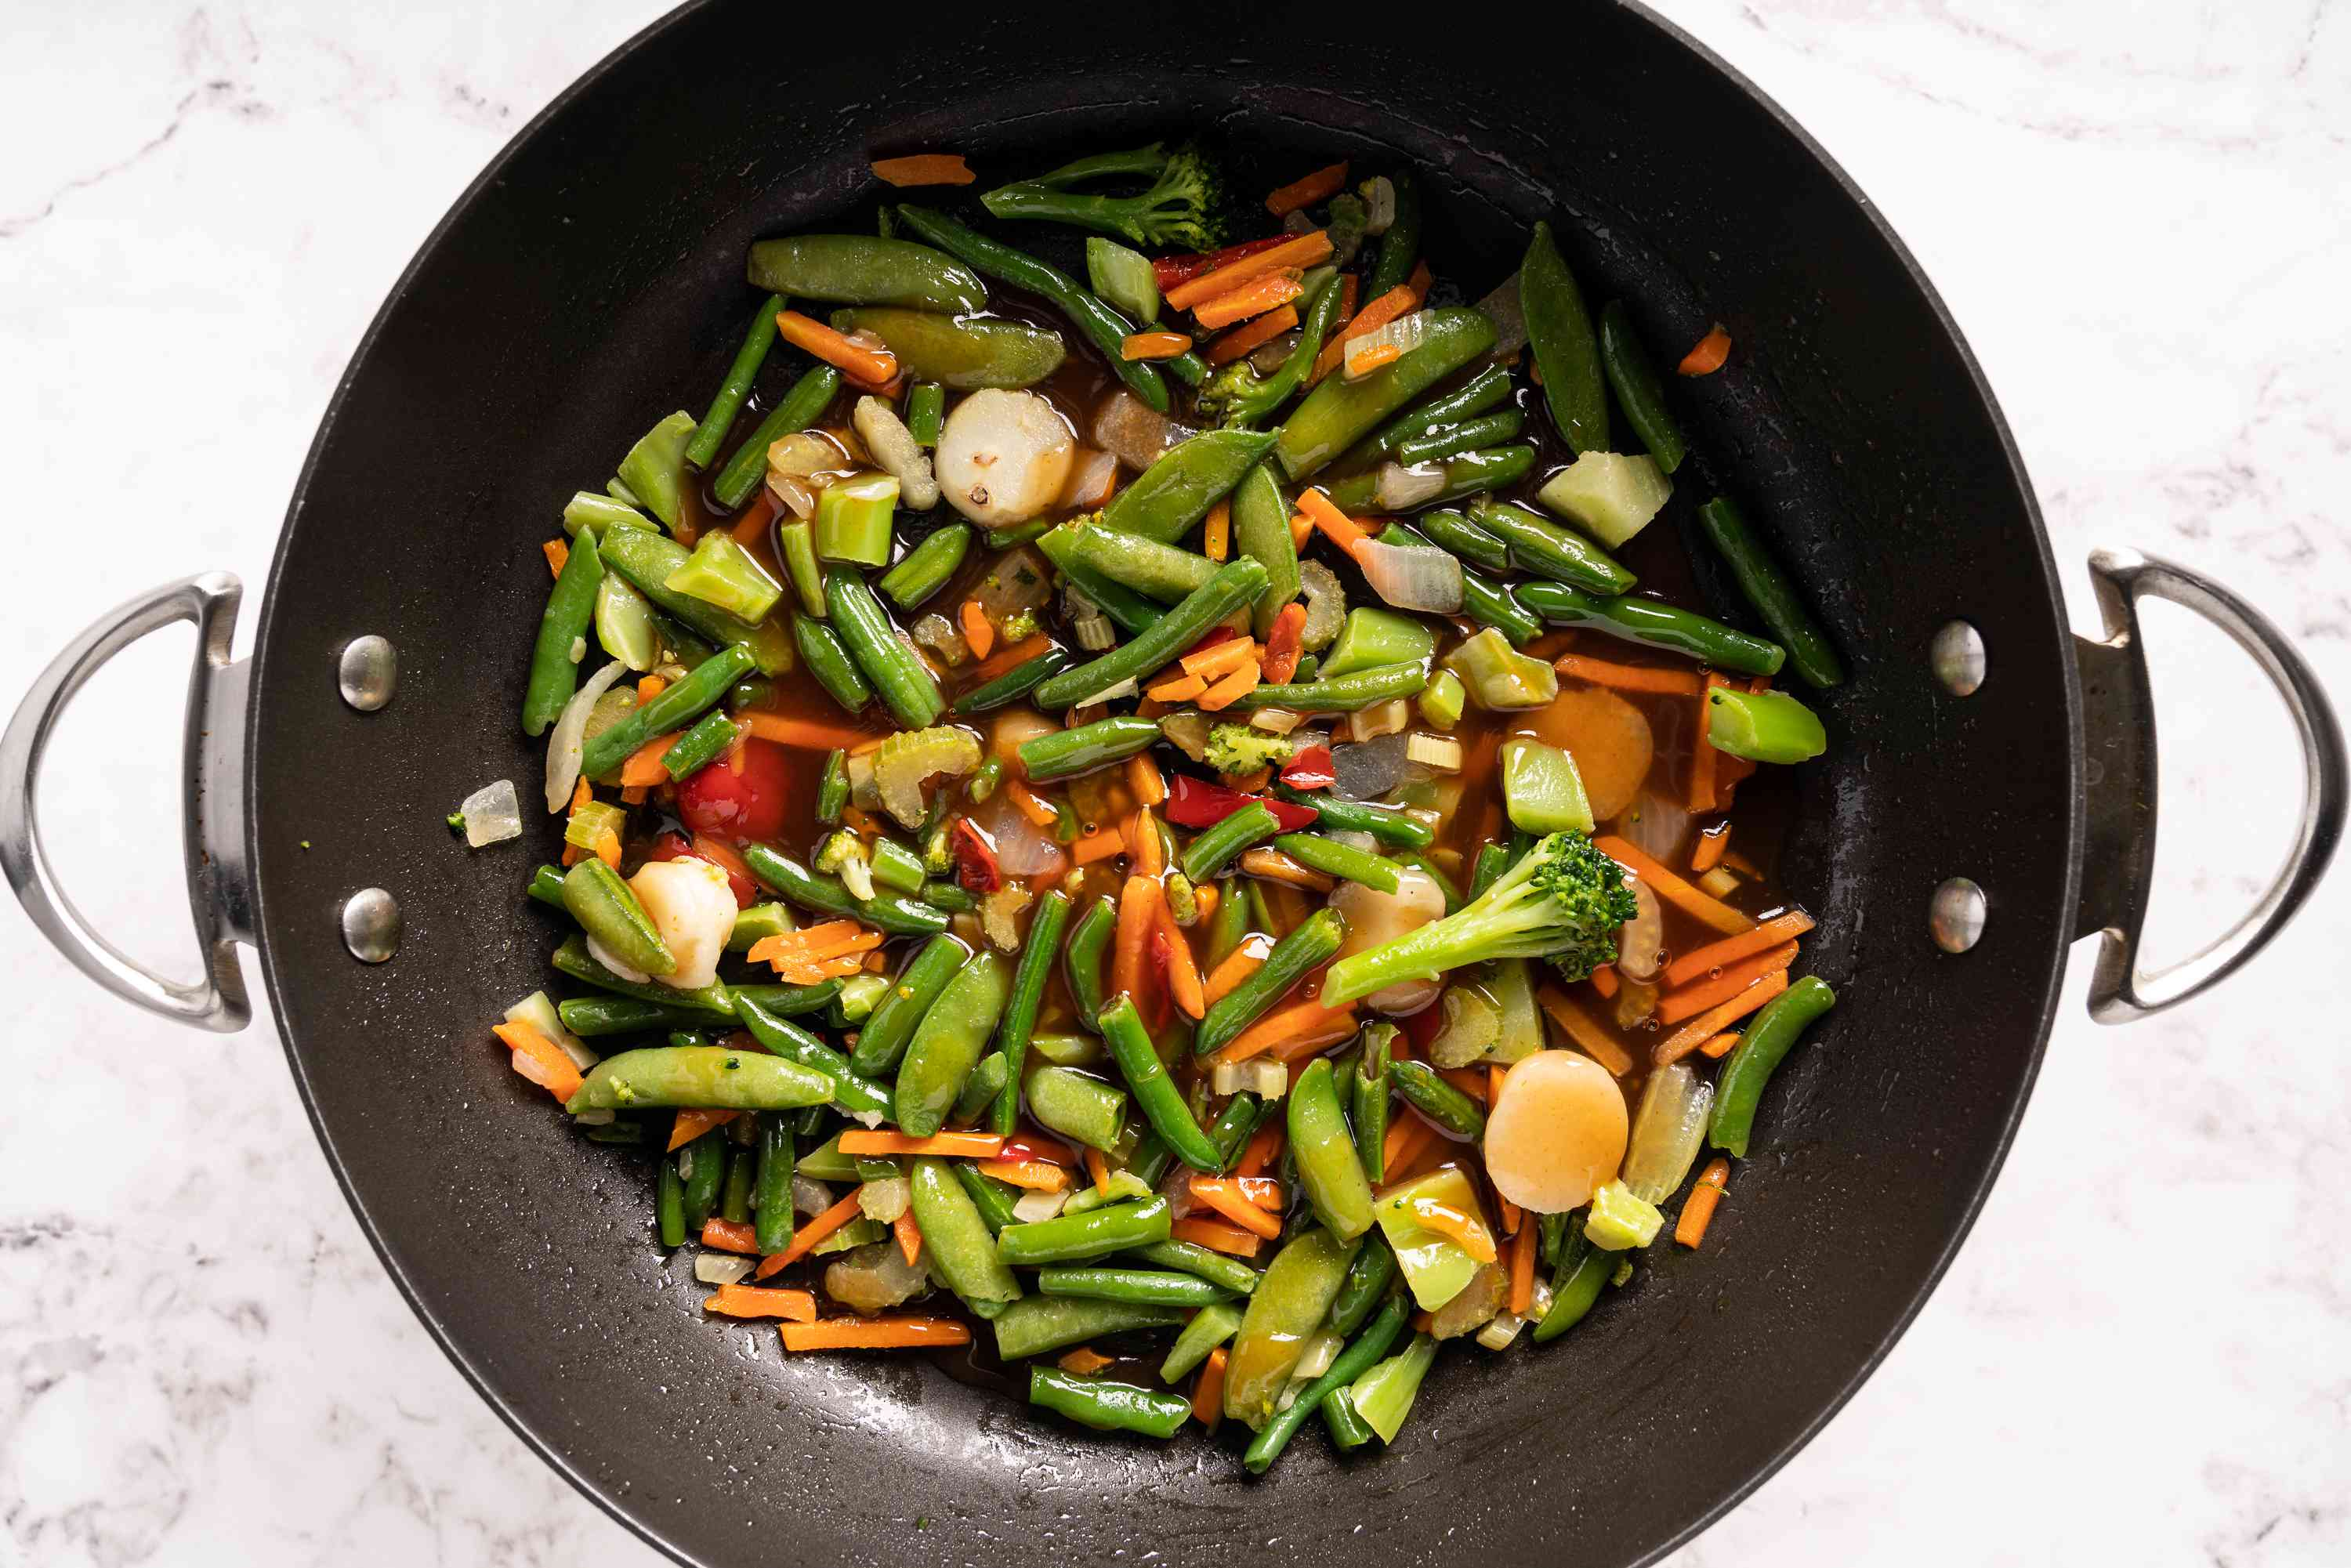 vegetables and sauce in a wok